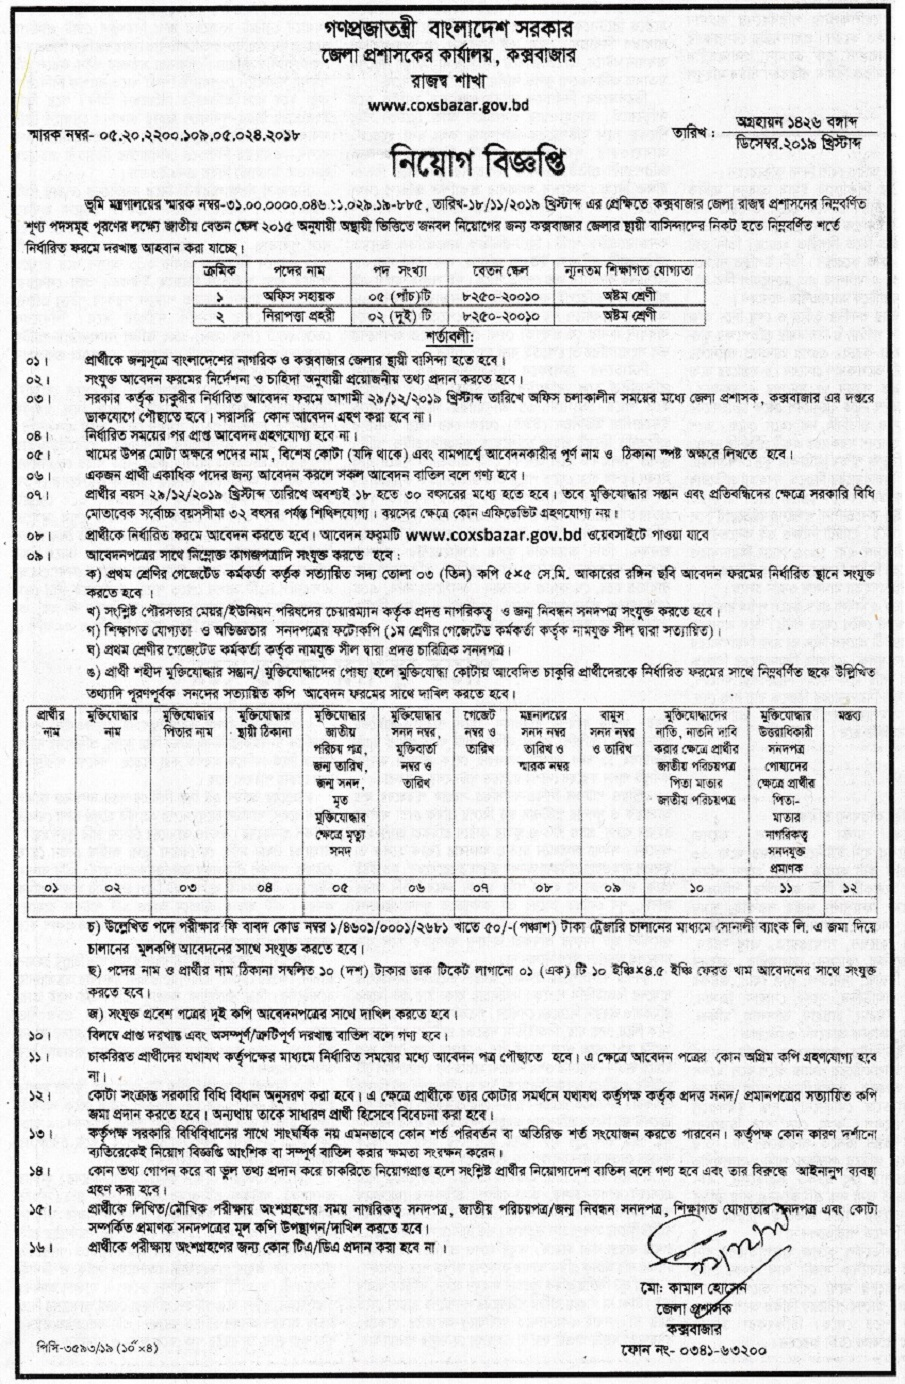 Cox's Bazar Deputy Commissioner's Office Job Circular 2019